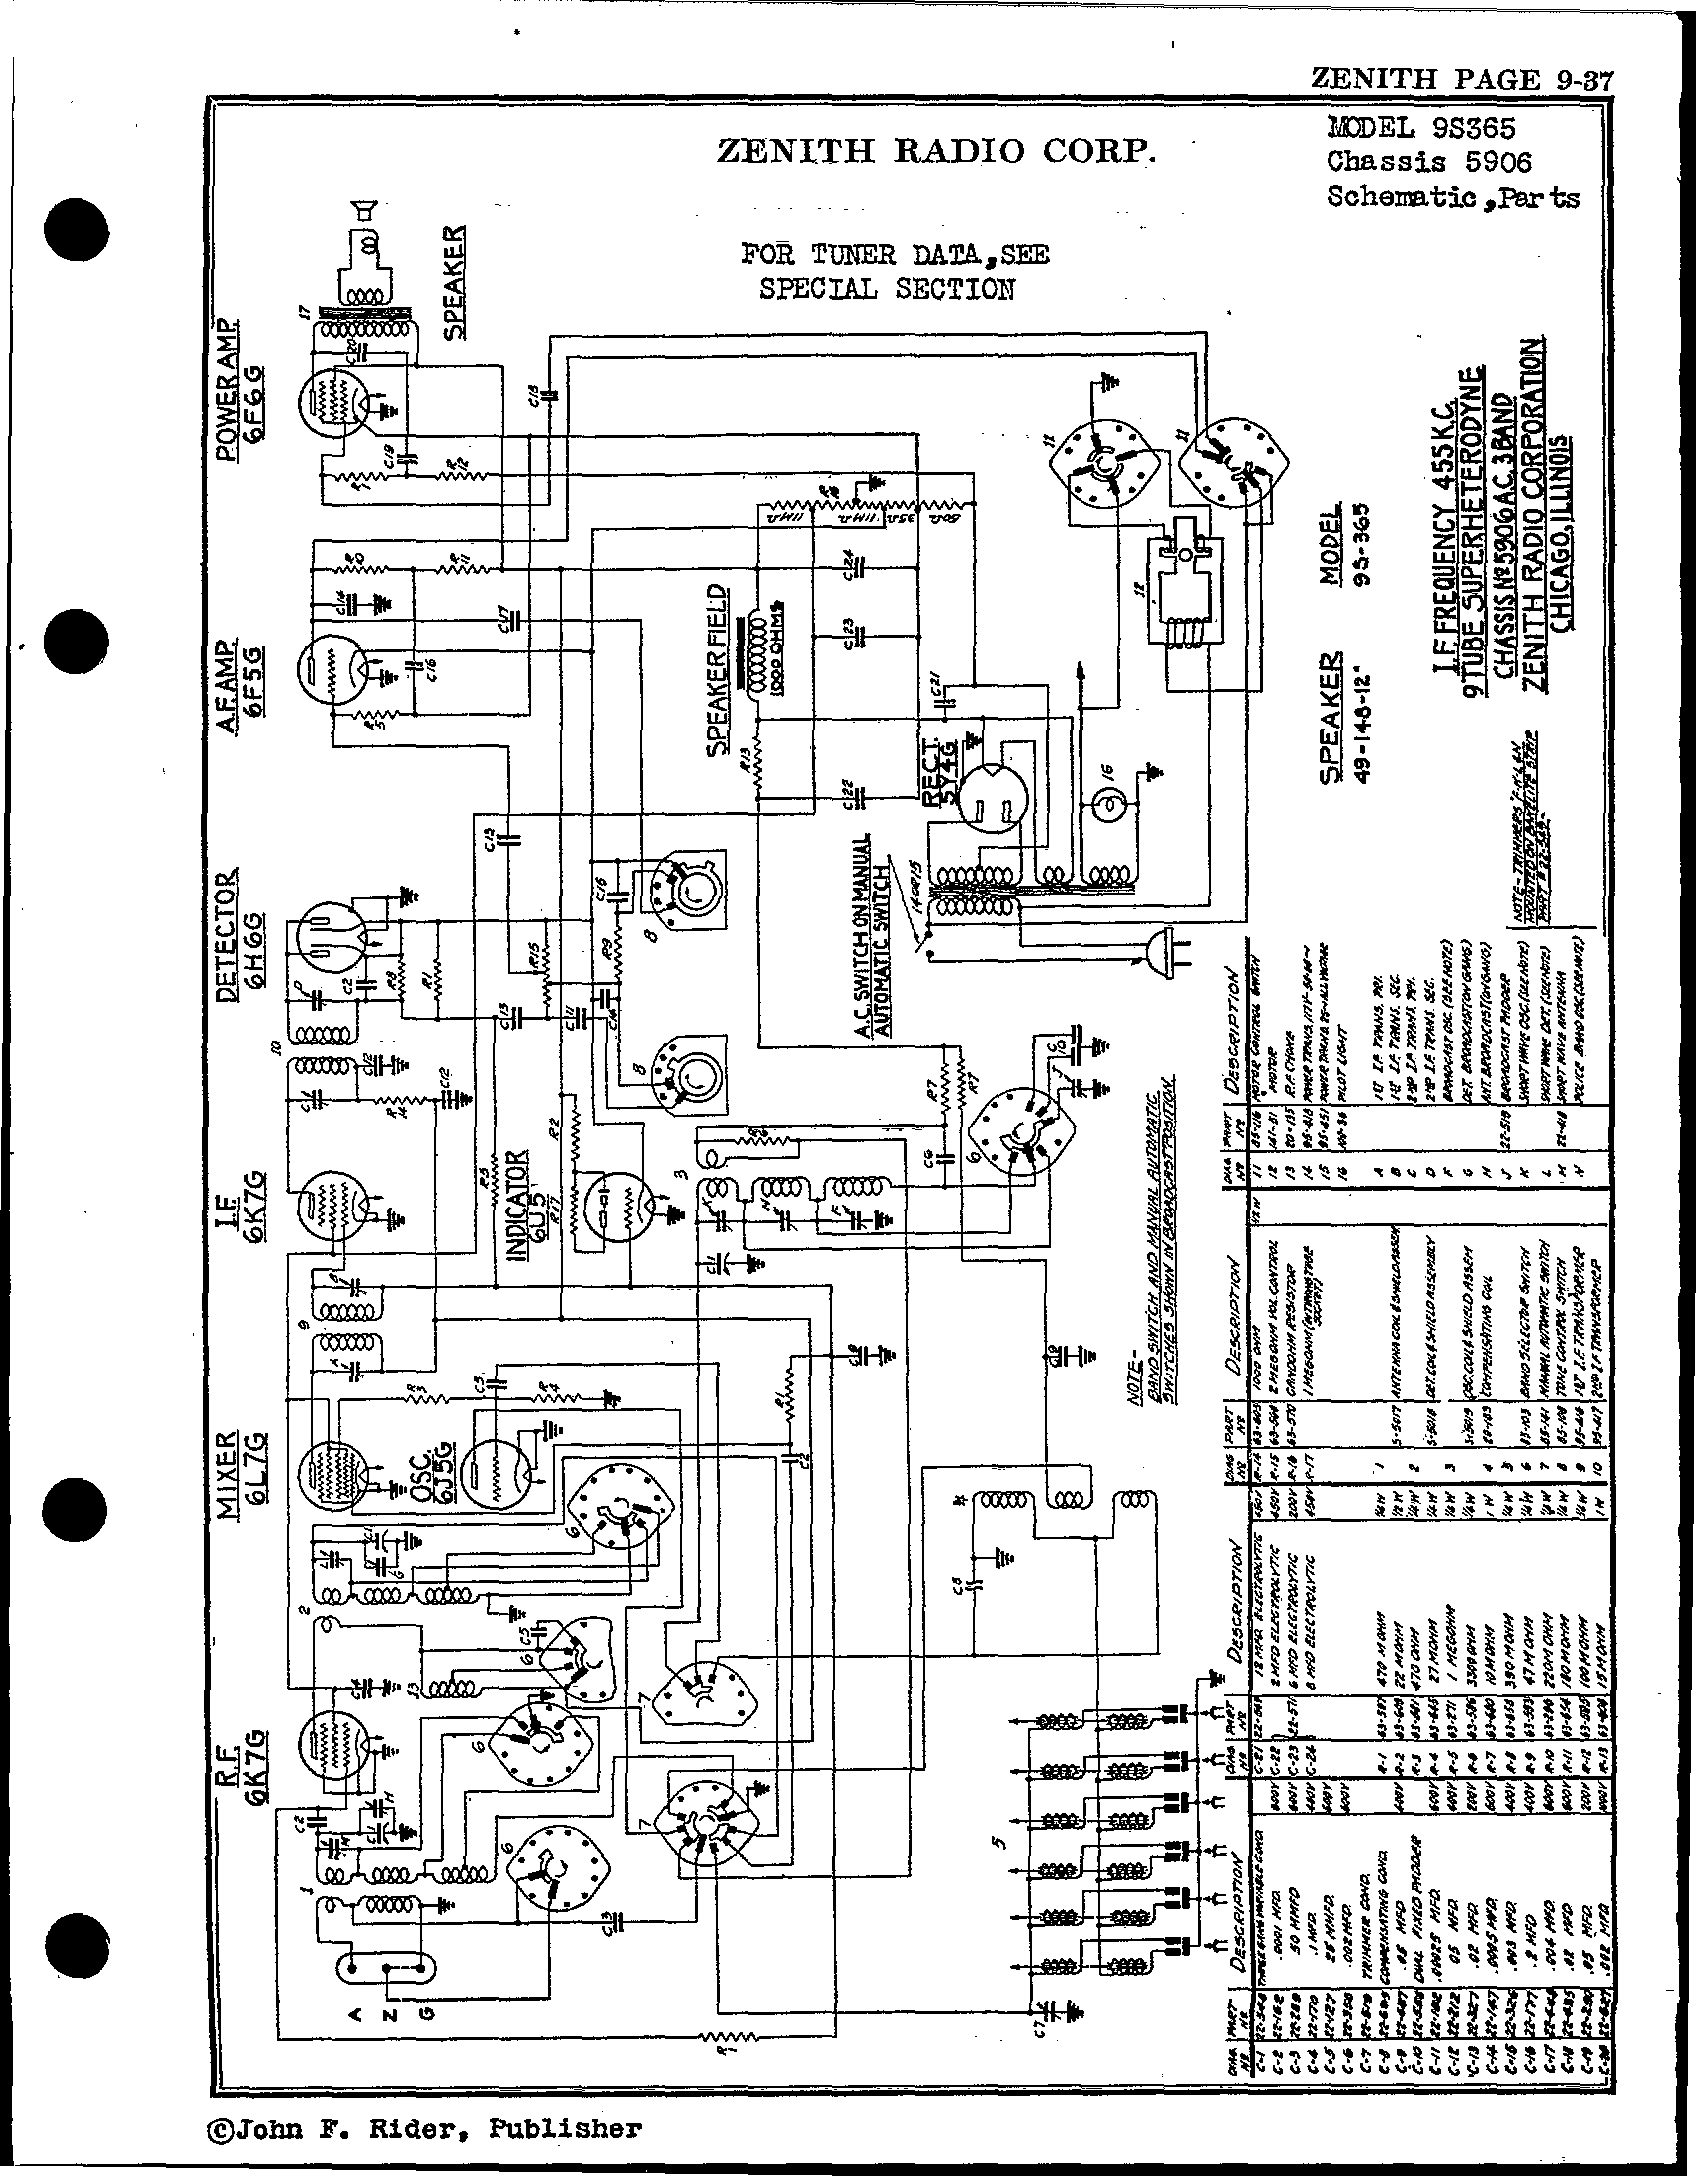 Zenith Radio Corp 9s365 Antique Electronic Supply. Page 1 8624 Kb Rider Manual Volume 9. Wiring. Zenith Tube Radio Schematics N73 1 At Scoala.co